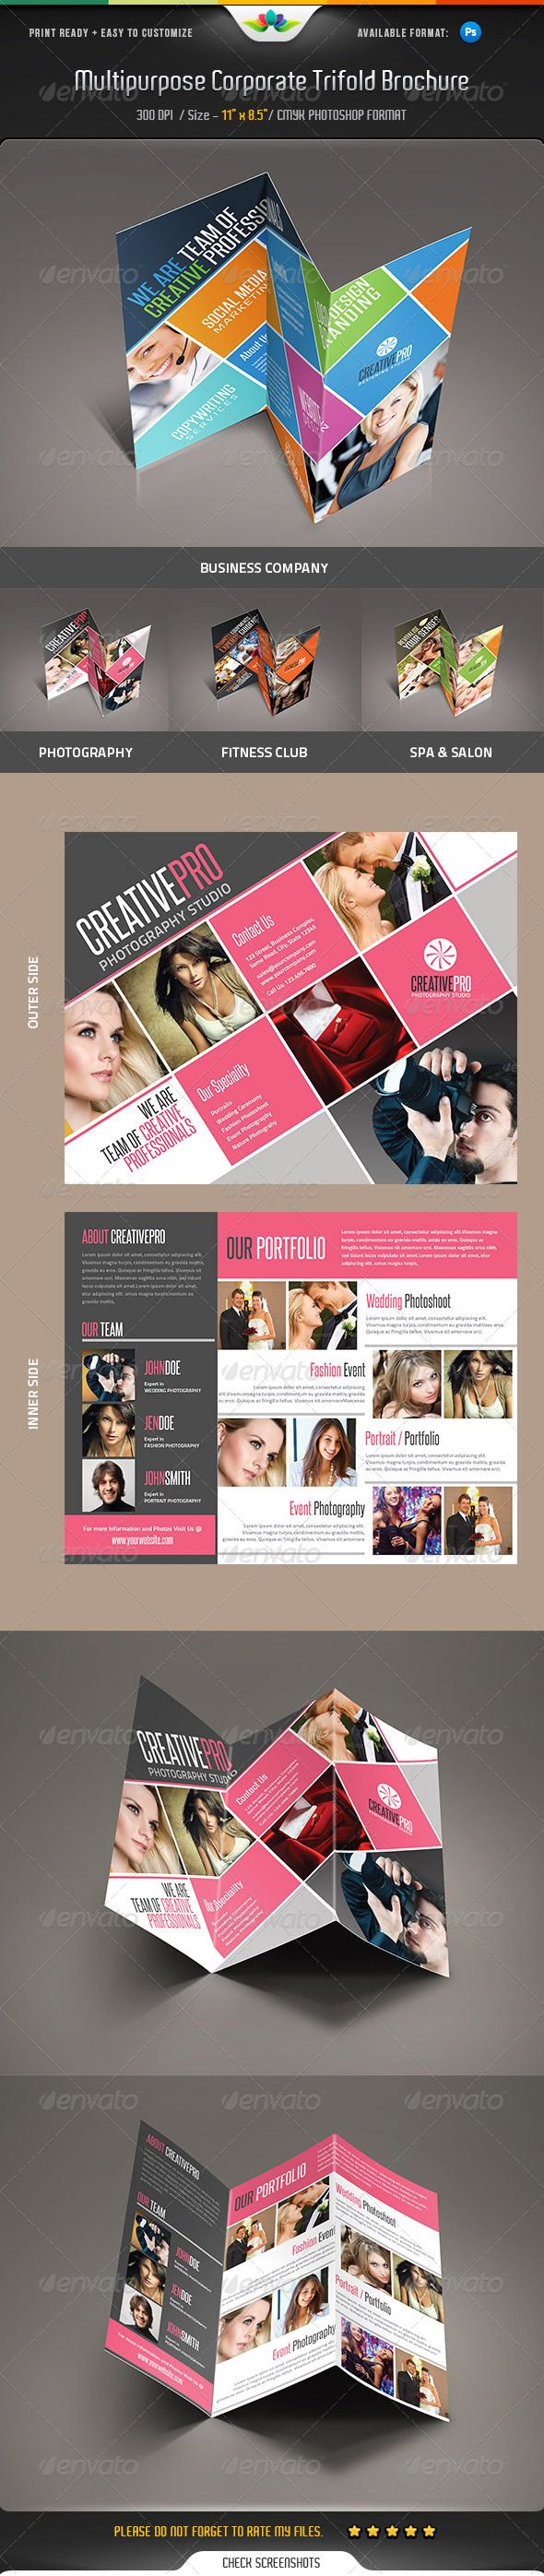 Multipurpose Corporate Trifold Brochure — Photoshop PSD #print #cmyk • Available here → https://graphicriver.net/item/multipurpose-corporate-trifold-brochure-/5293002?ref=pxcr